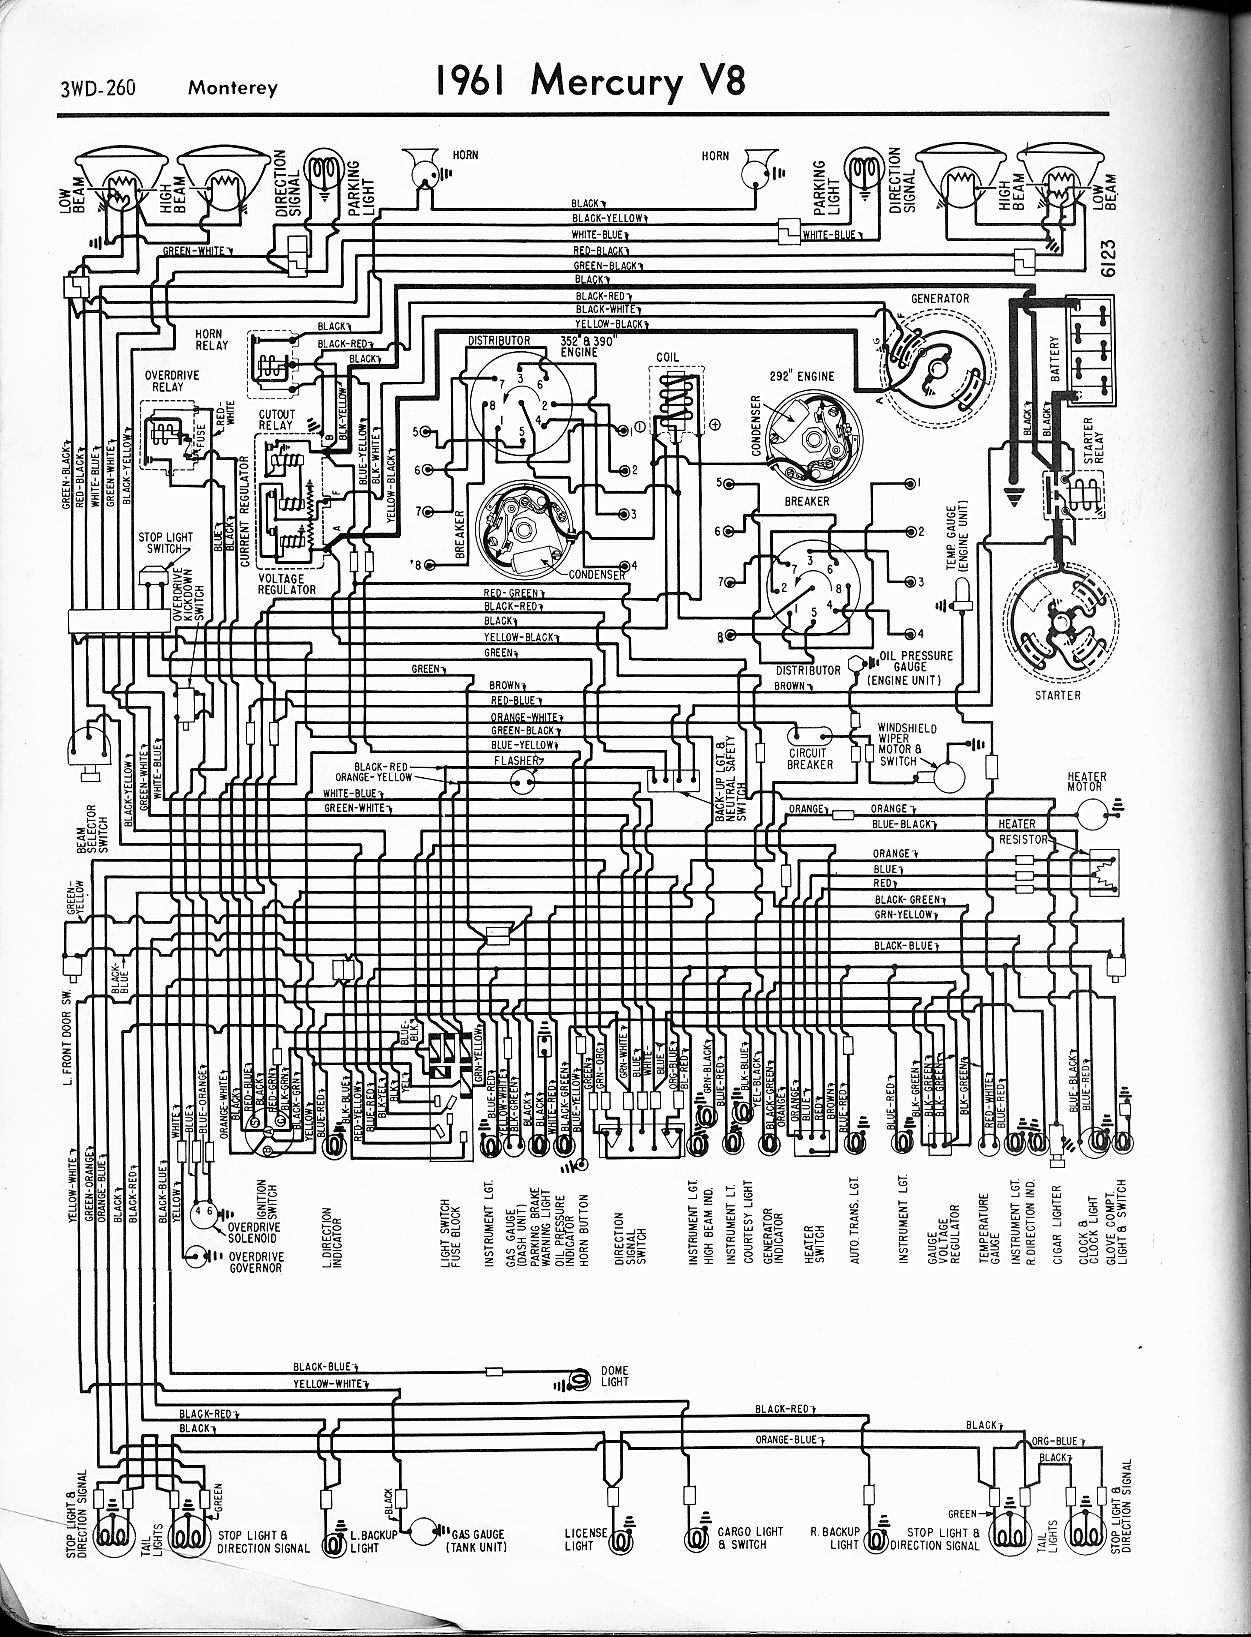 MWire5765 260 mercury wiring diagrams the old car manual project 1963 mercury comet wiring diagram at soozxer.org